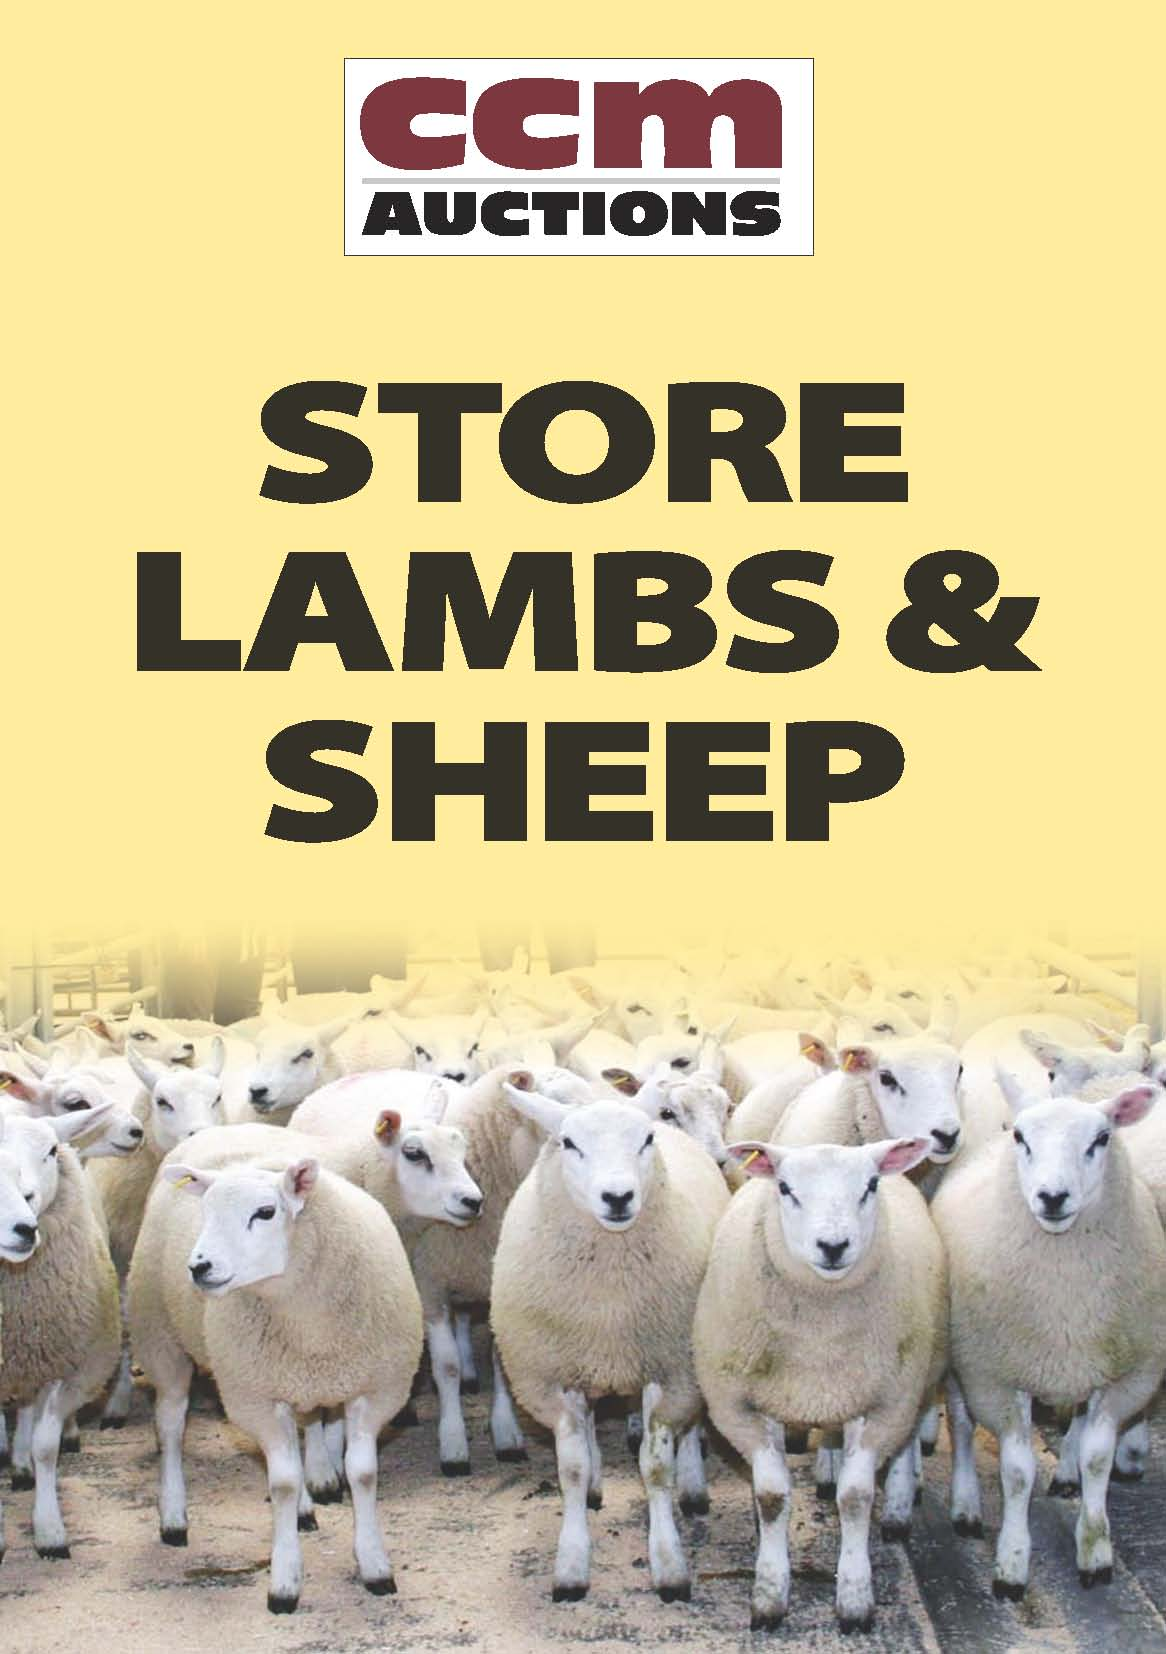 STORE LAMBS & BREEDING SHEEP - WEDNESDAY 27TH FEBRUARY 2019